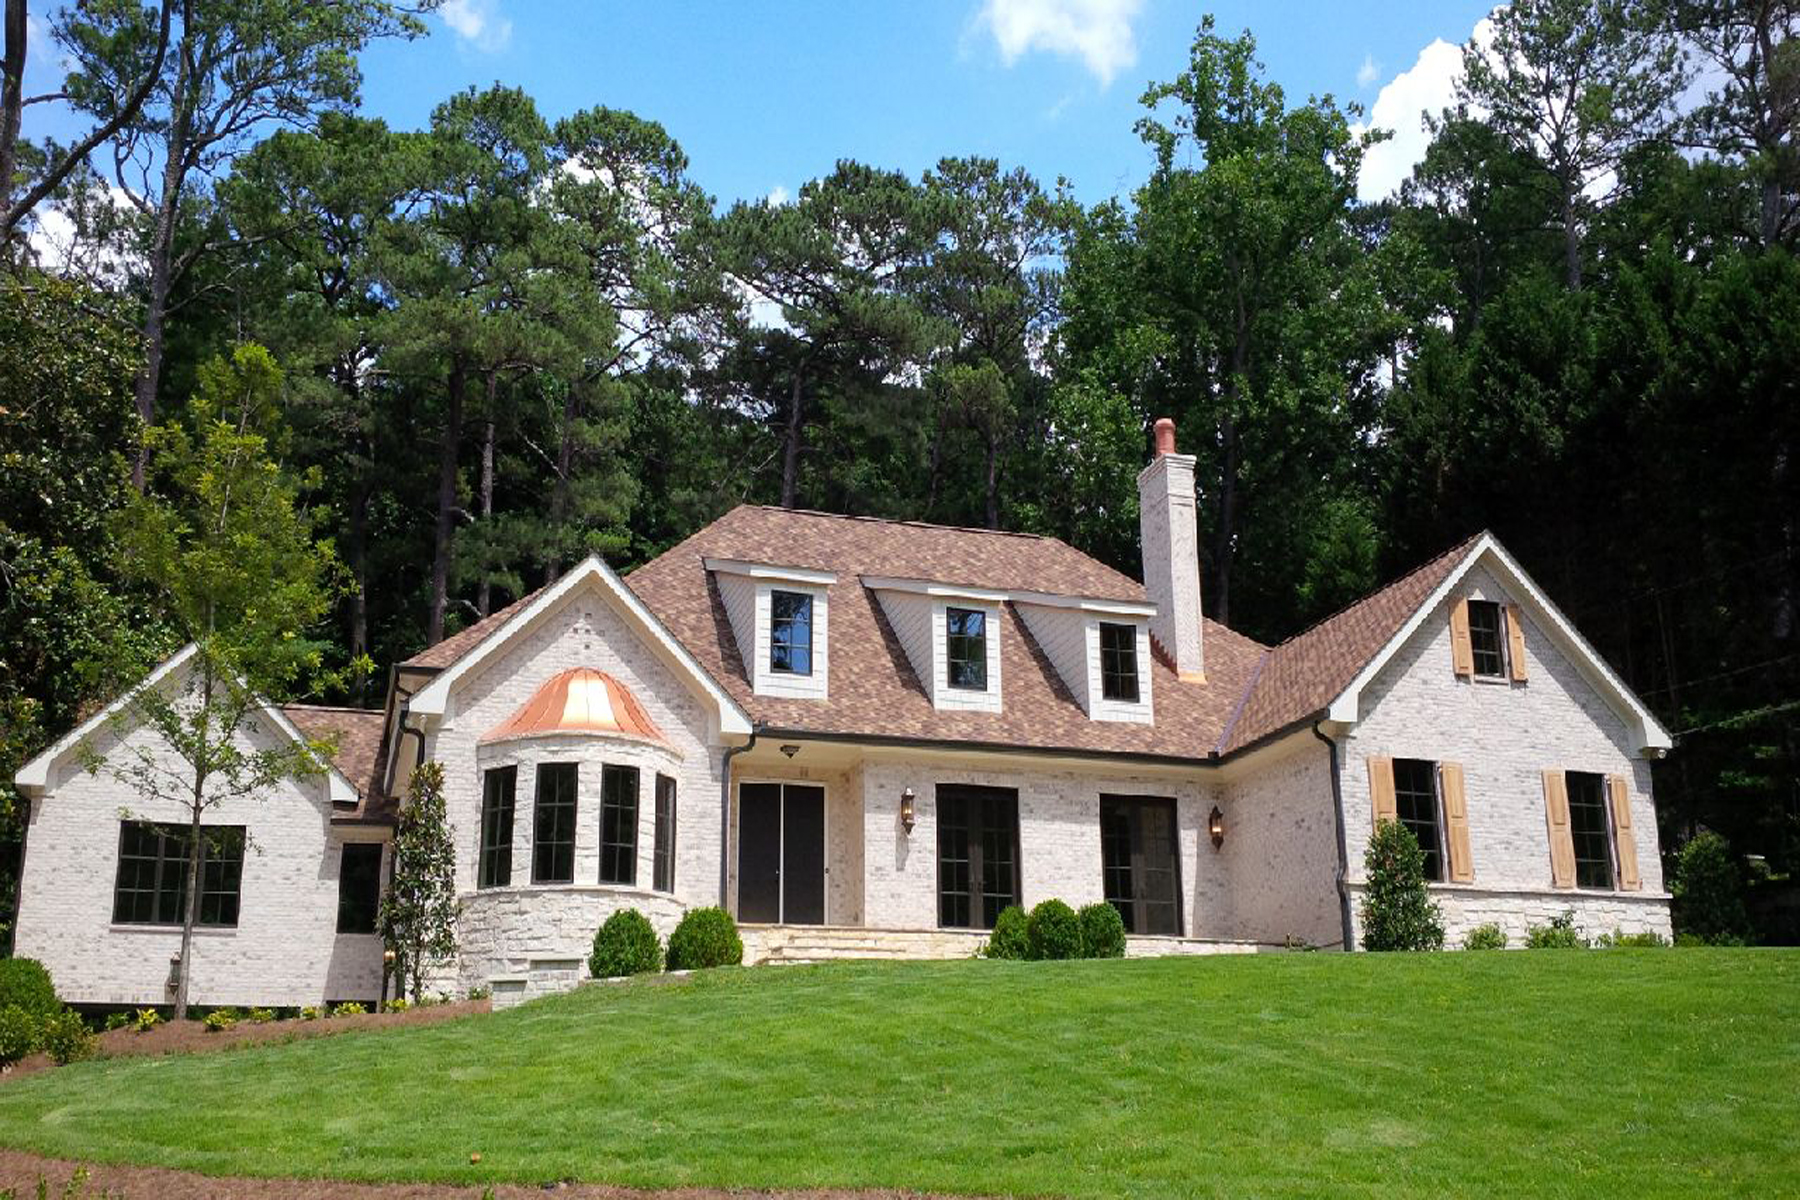 一戸建て のために 売買 アット Elegant New Construction in Majestic Tuxedo Park Location 3659 Northside Drive NW Buckhead, Atlanta, ジョージア 30305 アメリカ合衆国